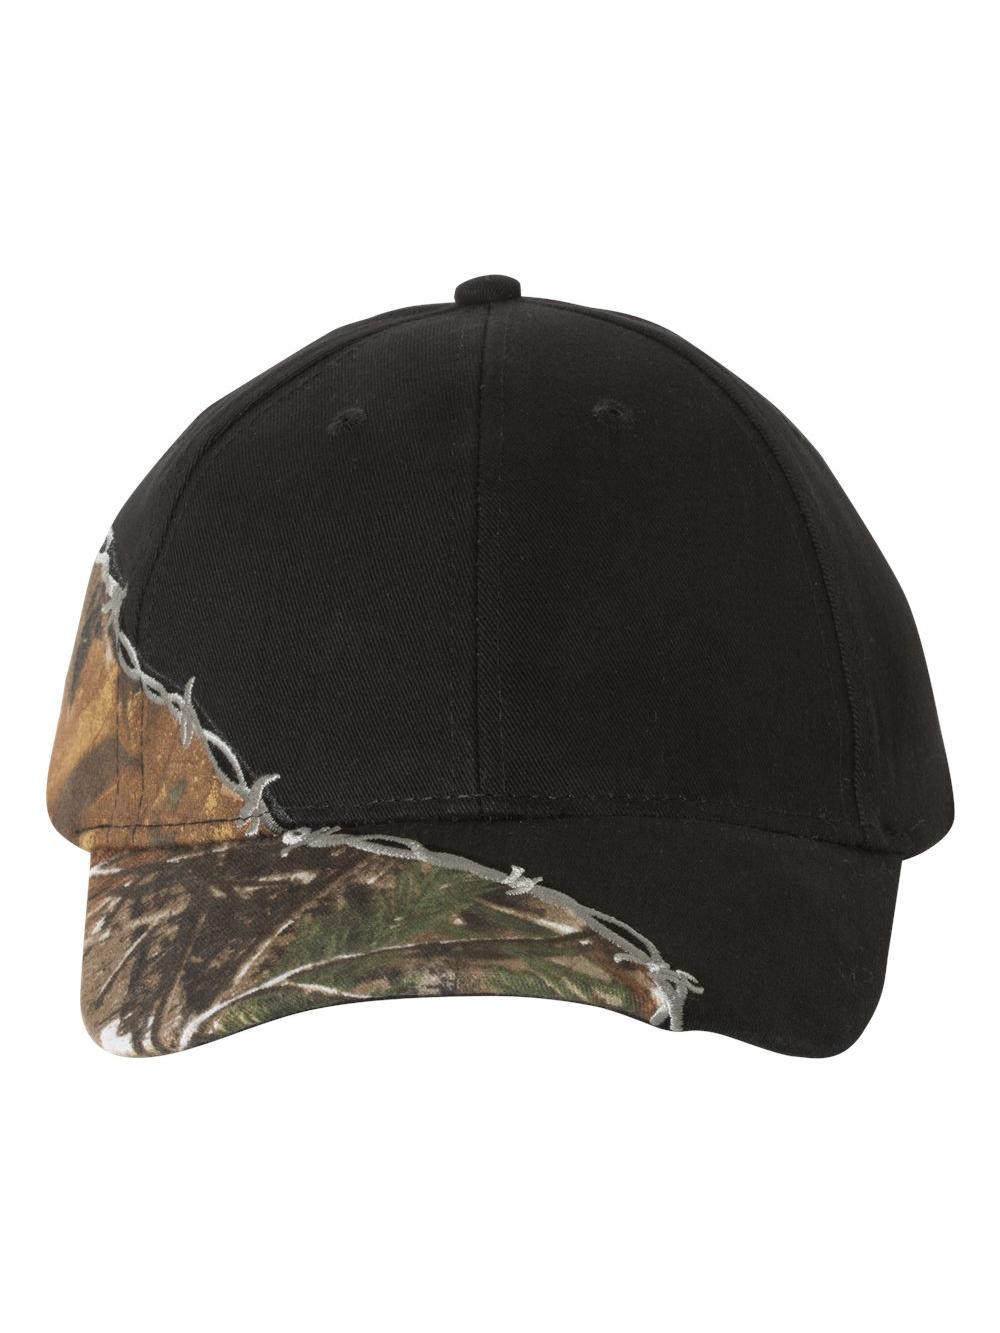 Kati - Licensed Camo Cap with Barbed Wire Embroidery - LC4BW | eBay